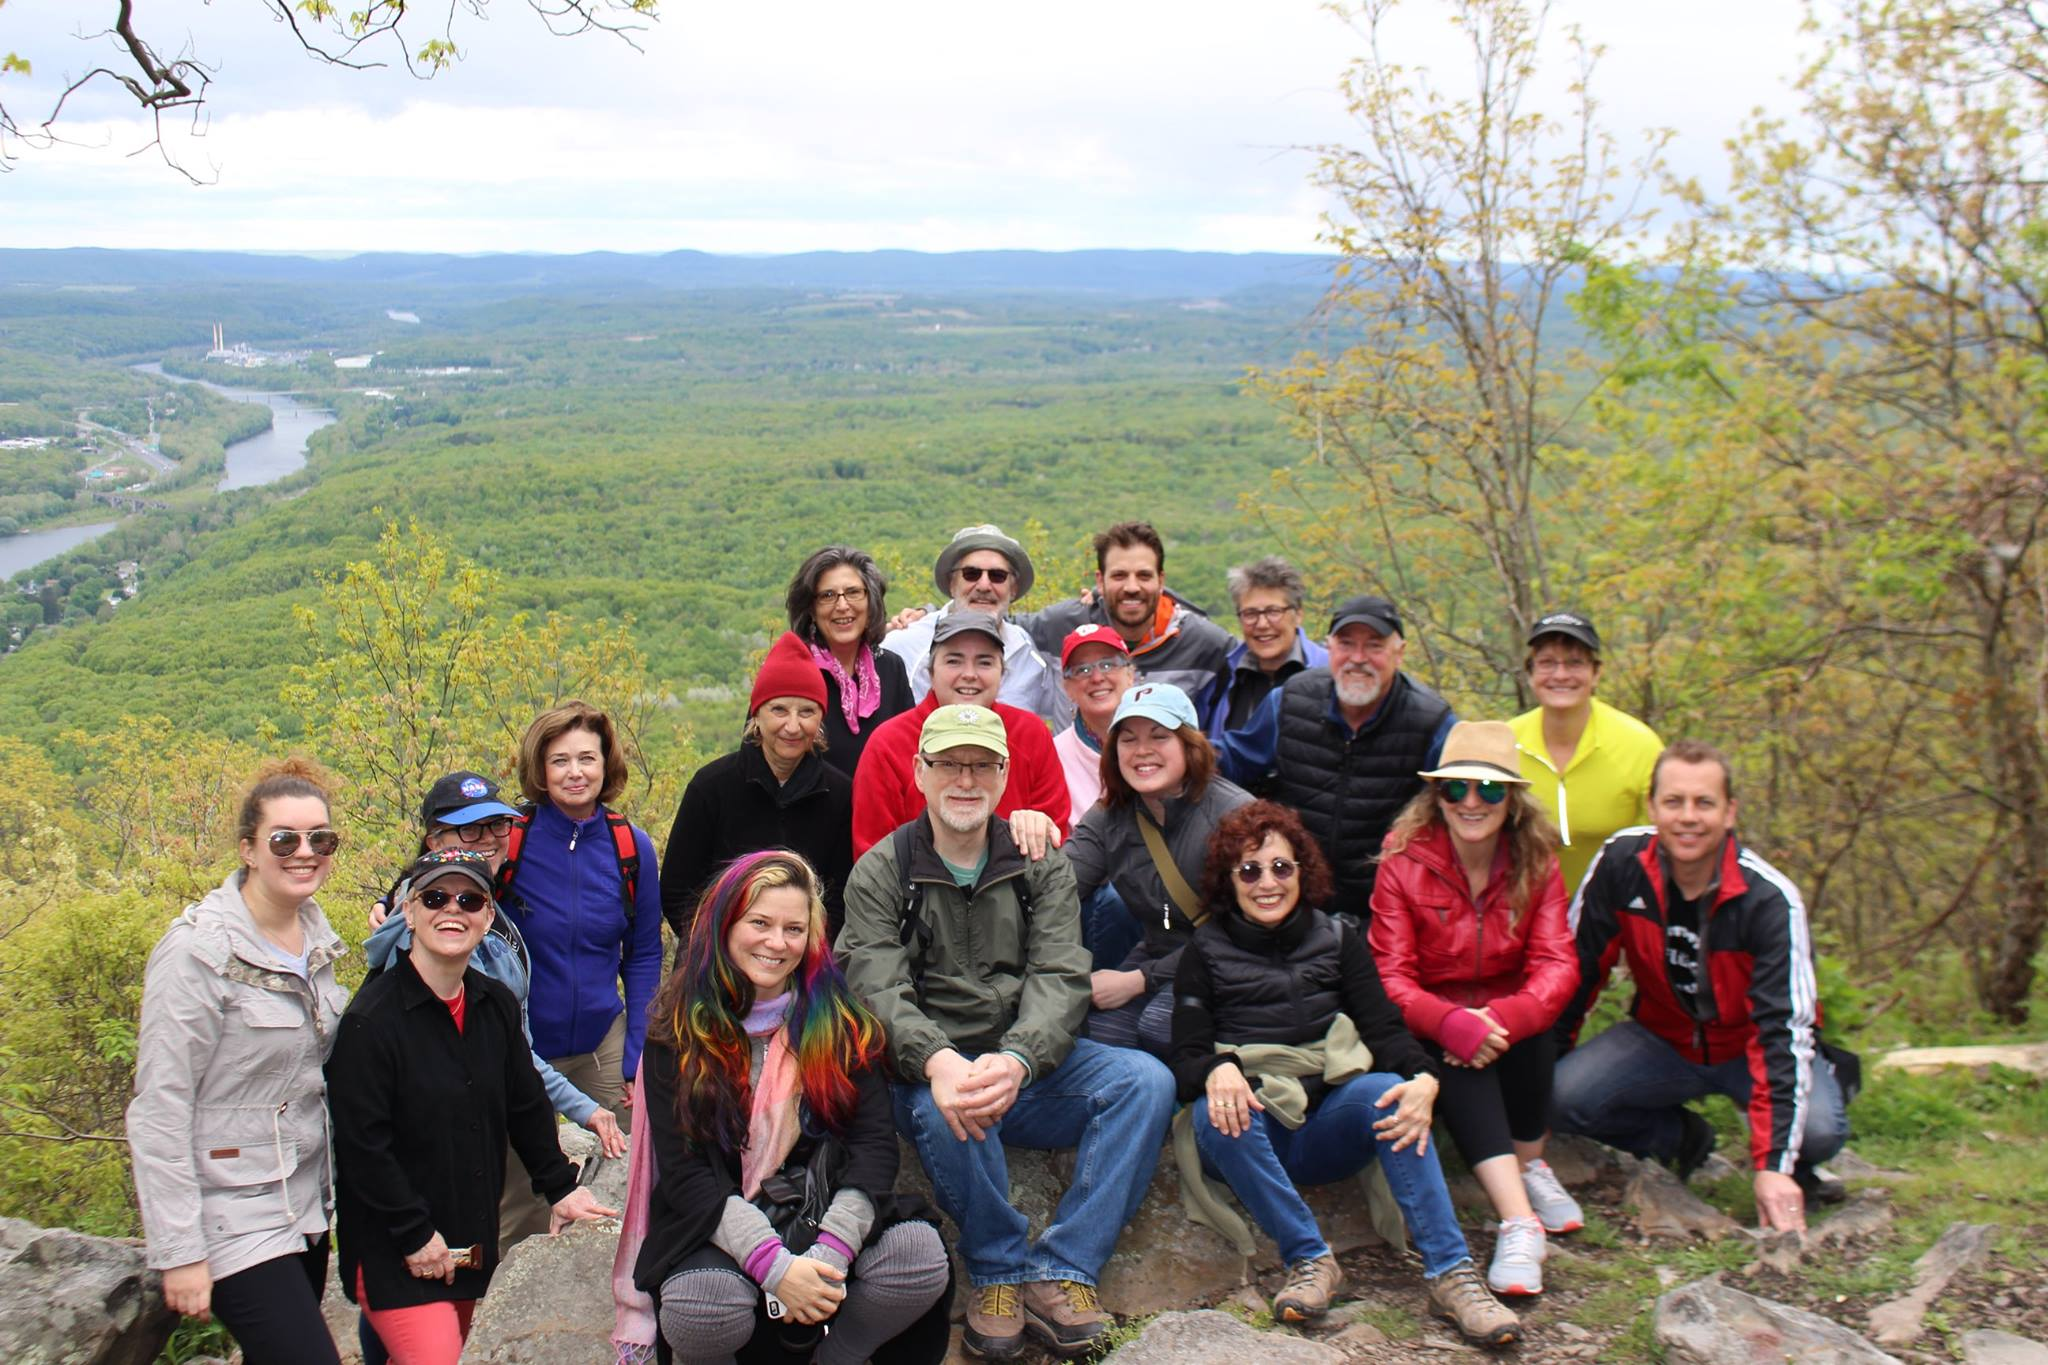 NAPAMA_Retreat 2016_Hiking Group.jpg